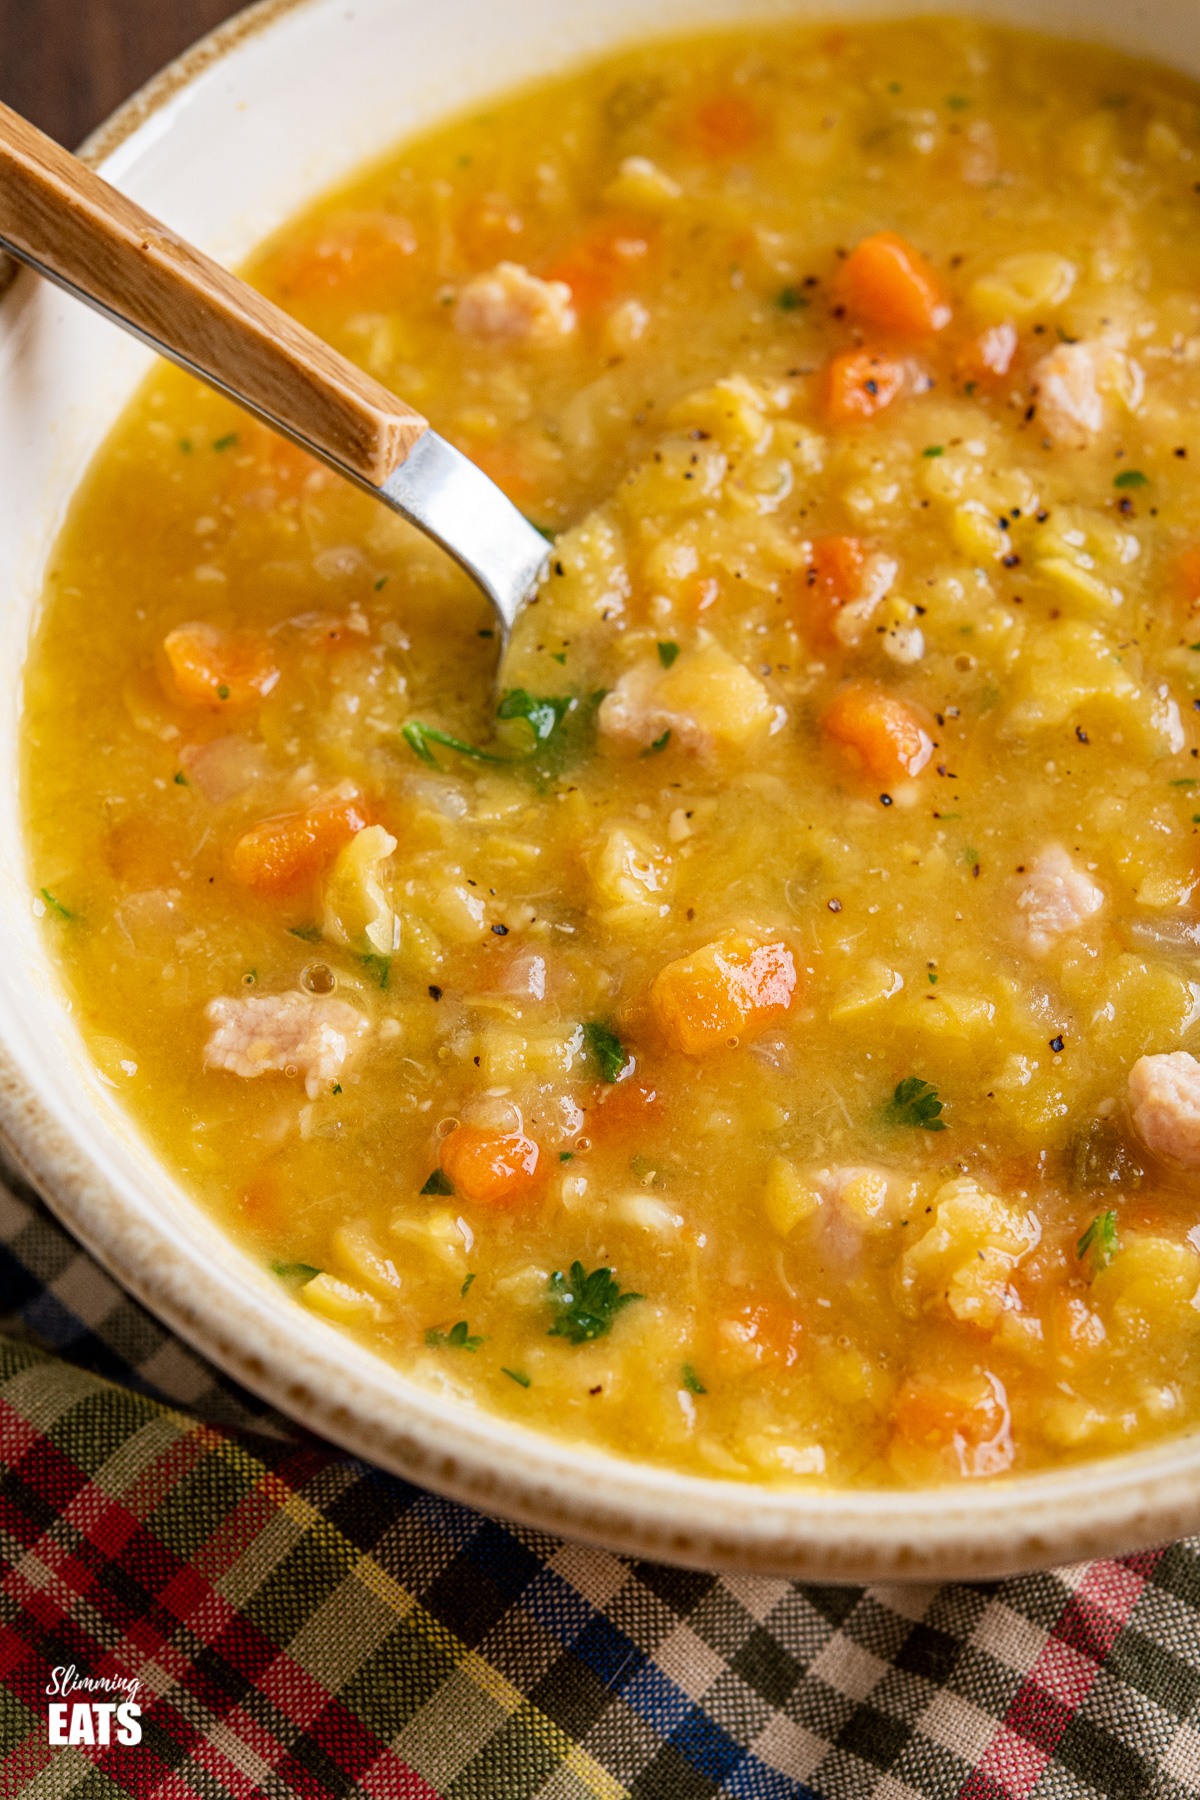 close up of split pea and bacon soup in bowl with wooden handles spoon